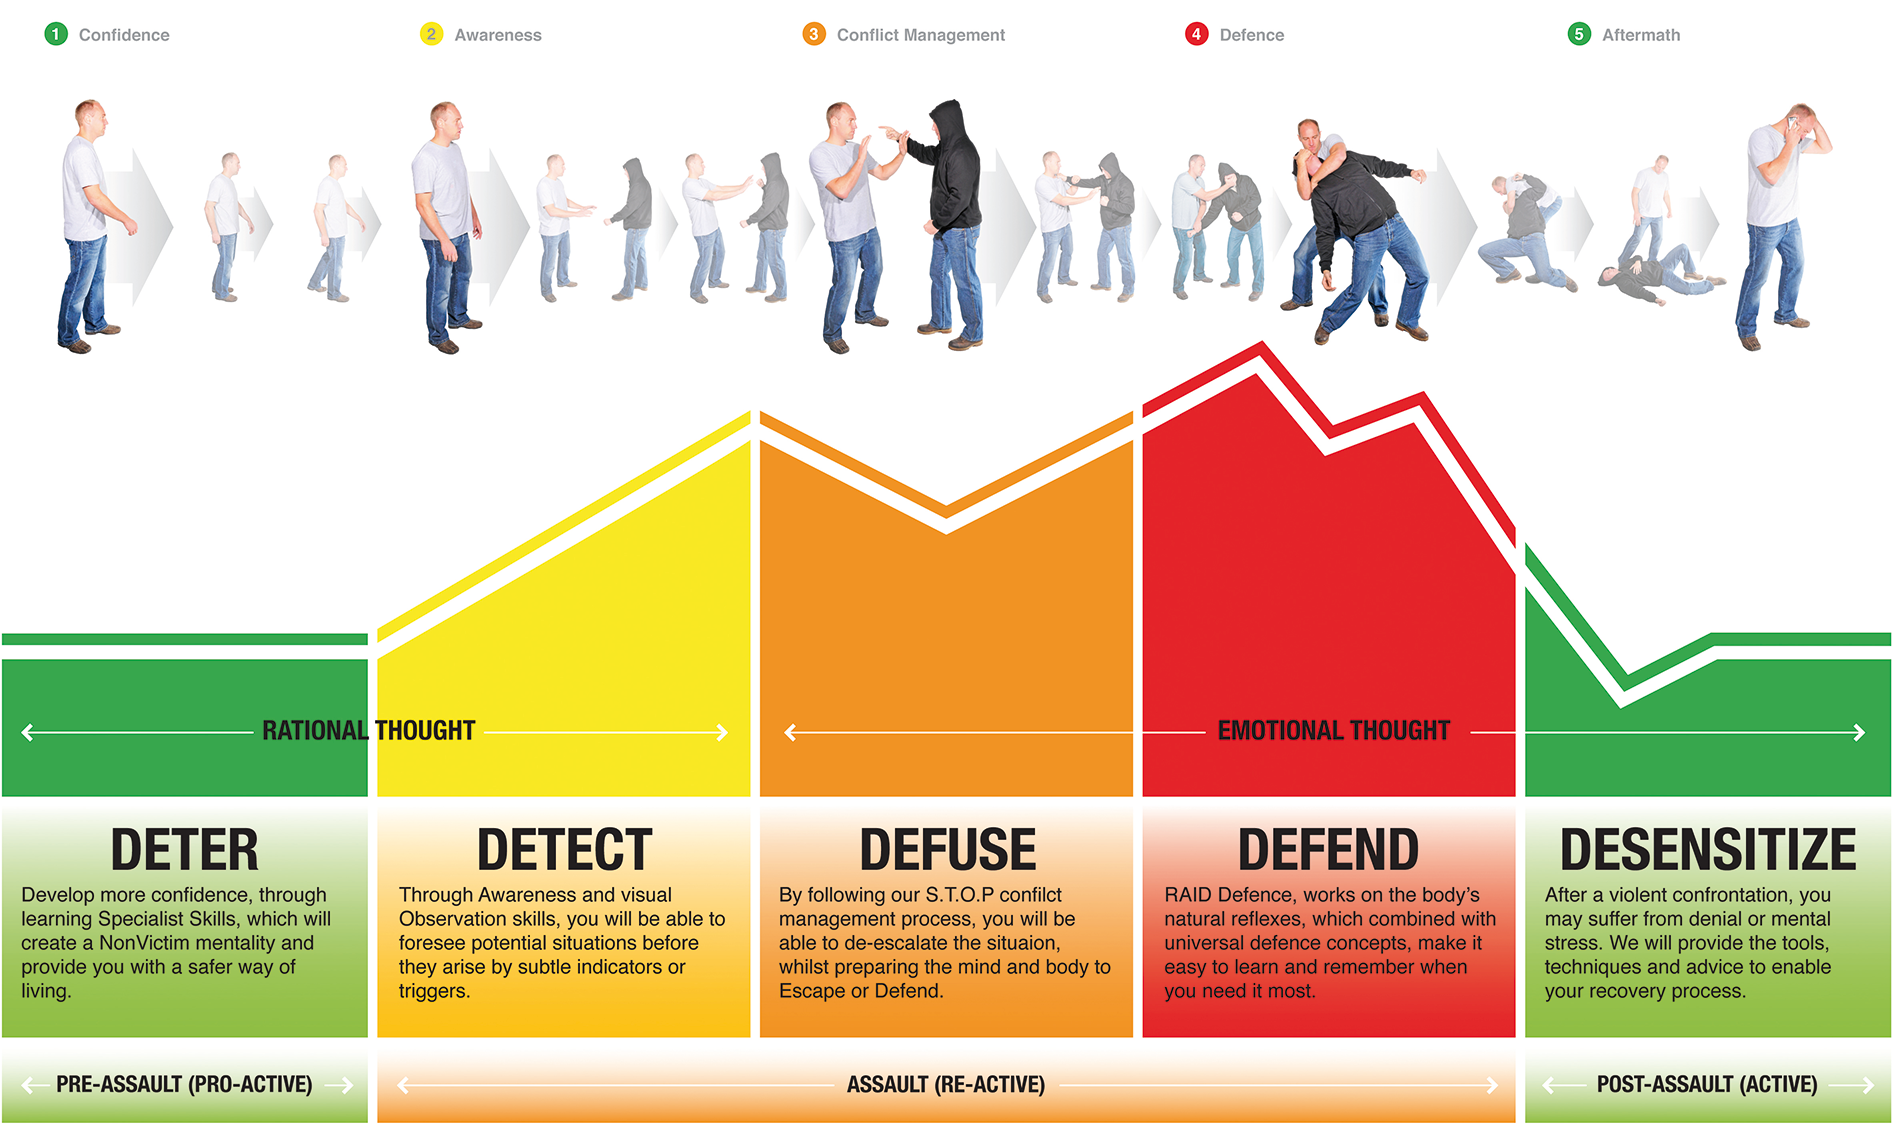 RAID Self Defence 5 D's of Defence Model